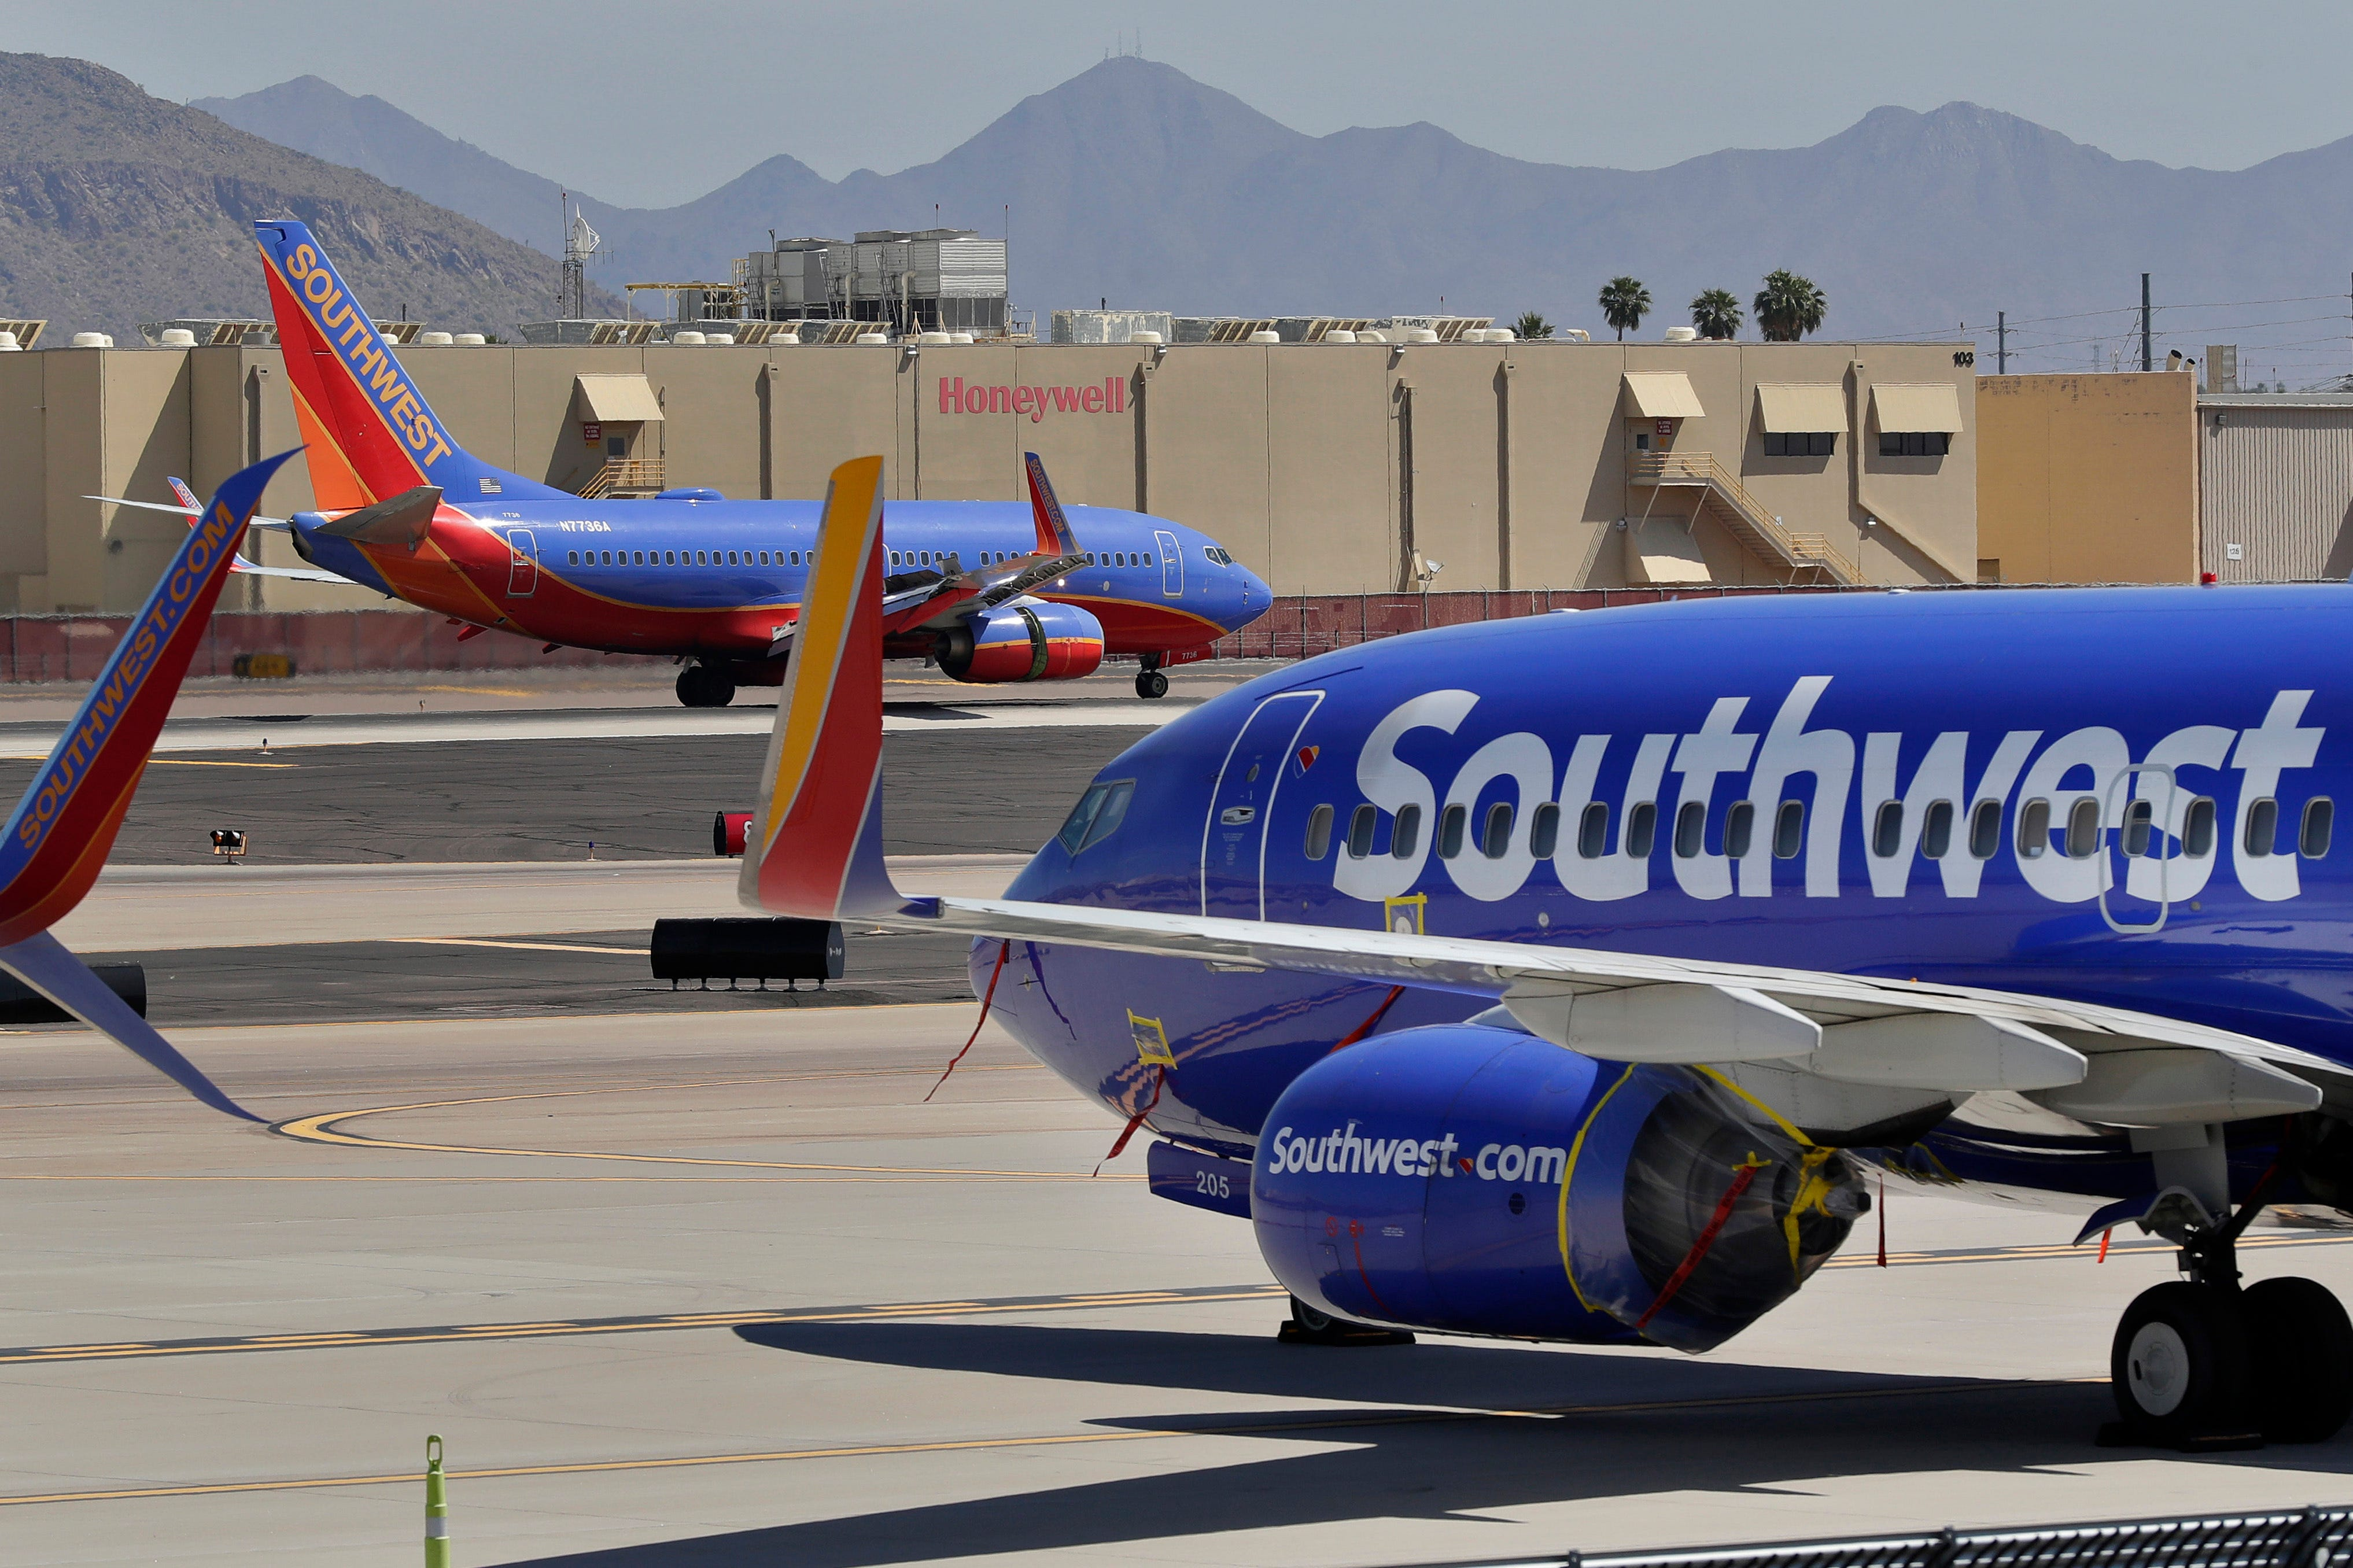 Slide 7 of 9: Southwest Airlines Who must wear: All passengers ages 2 and older Medical exemptions: None Prohibited face masks: Face coverings with holes, including exhaust valves; face coverings made solely of mesh or lace; bandannas and other face coverings that cannot be secured under the chin; face shields without a face covering underneath. Neck gaiters are allowed if they cover the nose and mouth and are secured under the chin. Details:  Southwest website